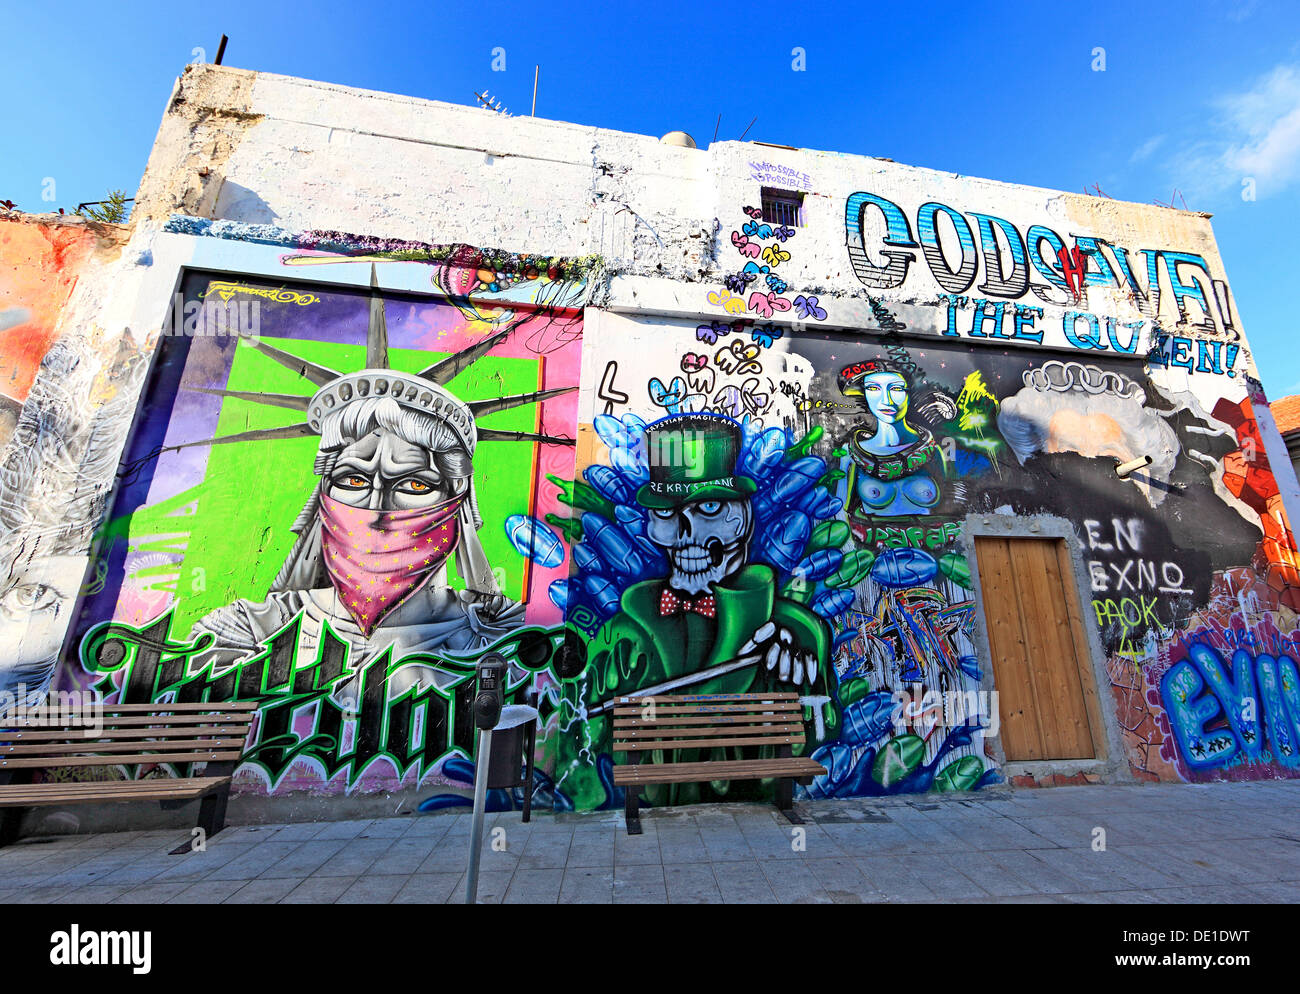 Cyprus, Limassol, Lemesos, houses with graffiti in the old town - Stock Image